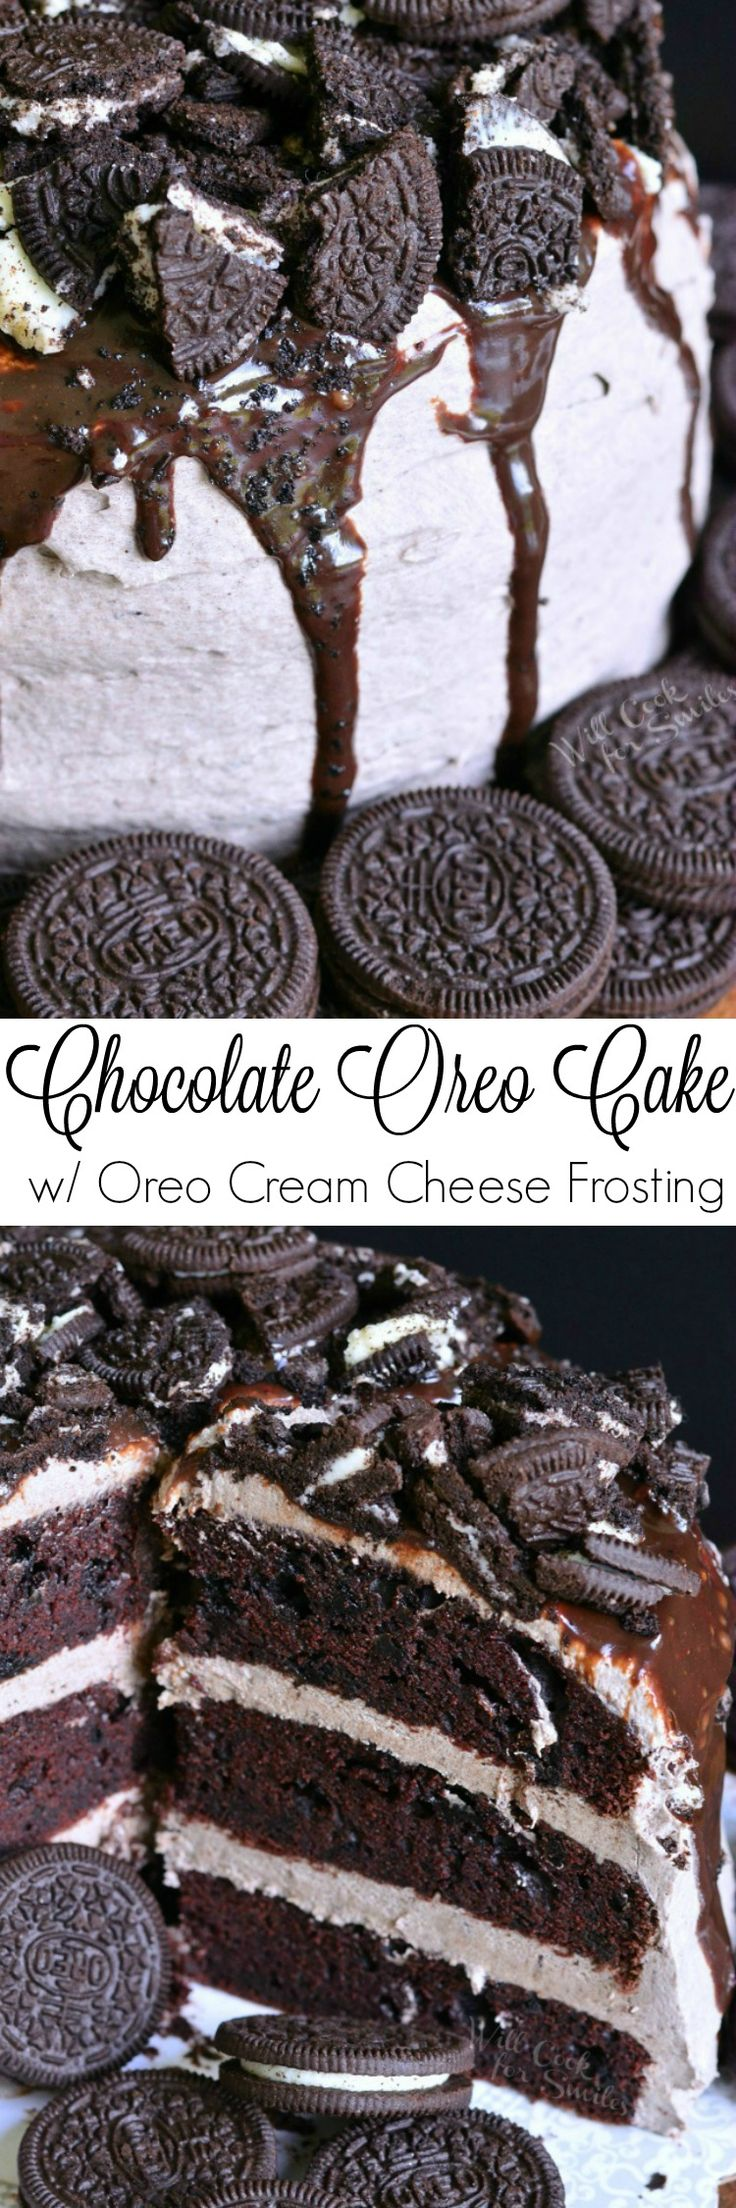 Chocolate Oreo Cake. An unbelievable, absolutely HEAVENLY Oreo cake baked with Oreo cookies inside and then filled and frosted with smooth Oreo Cookie Cream…